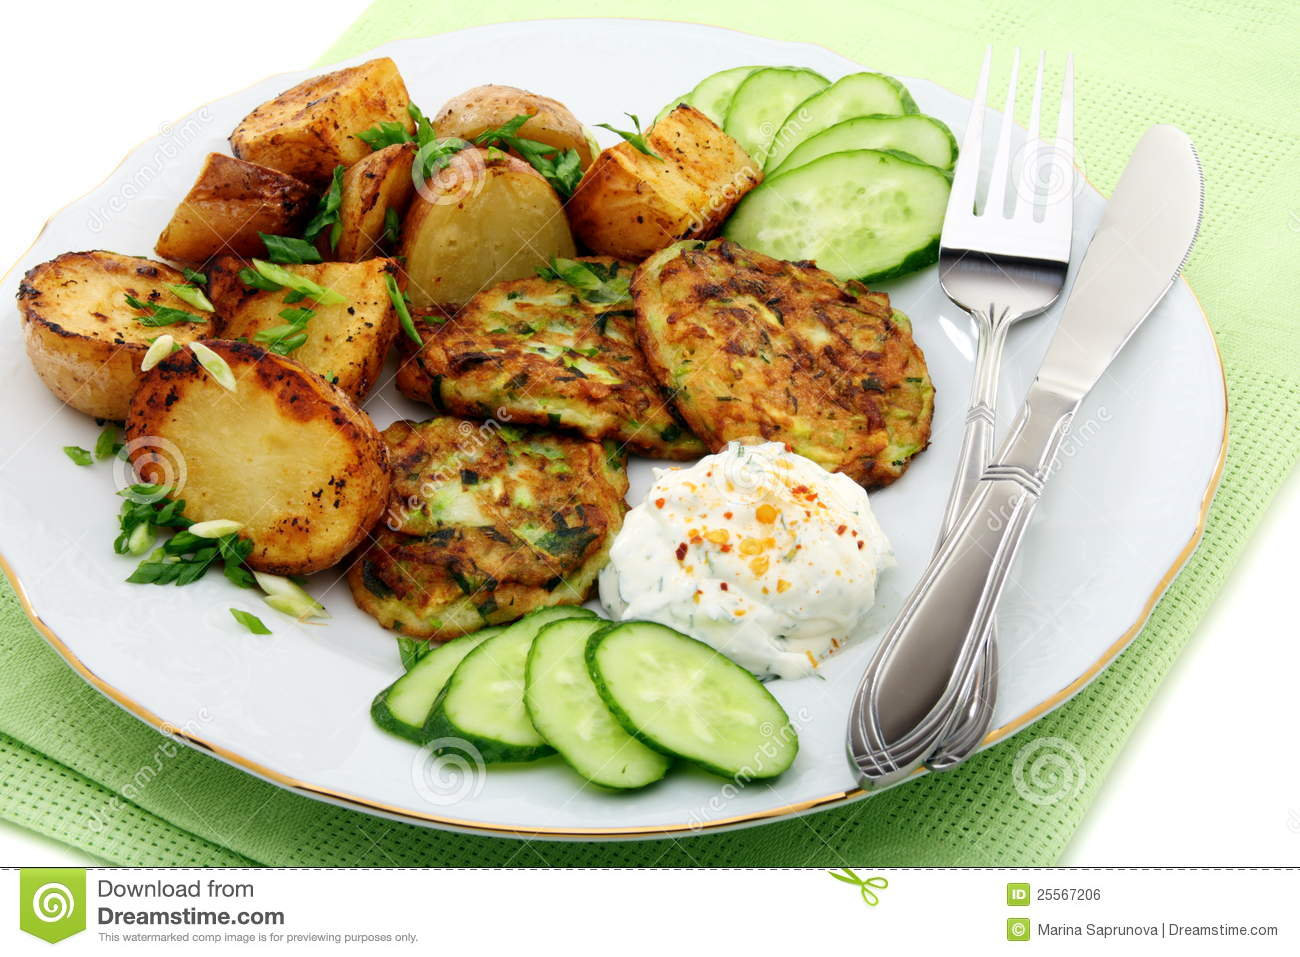 how to make zucchini fritters without egg